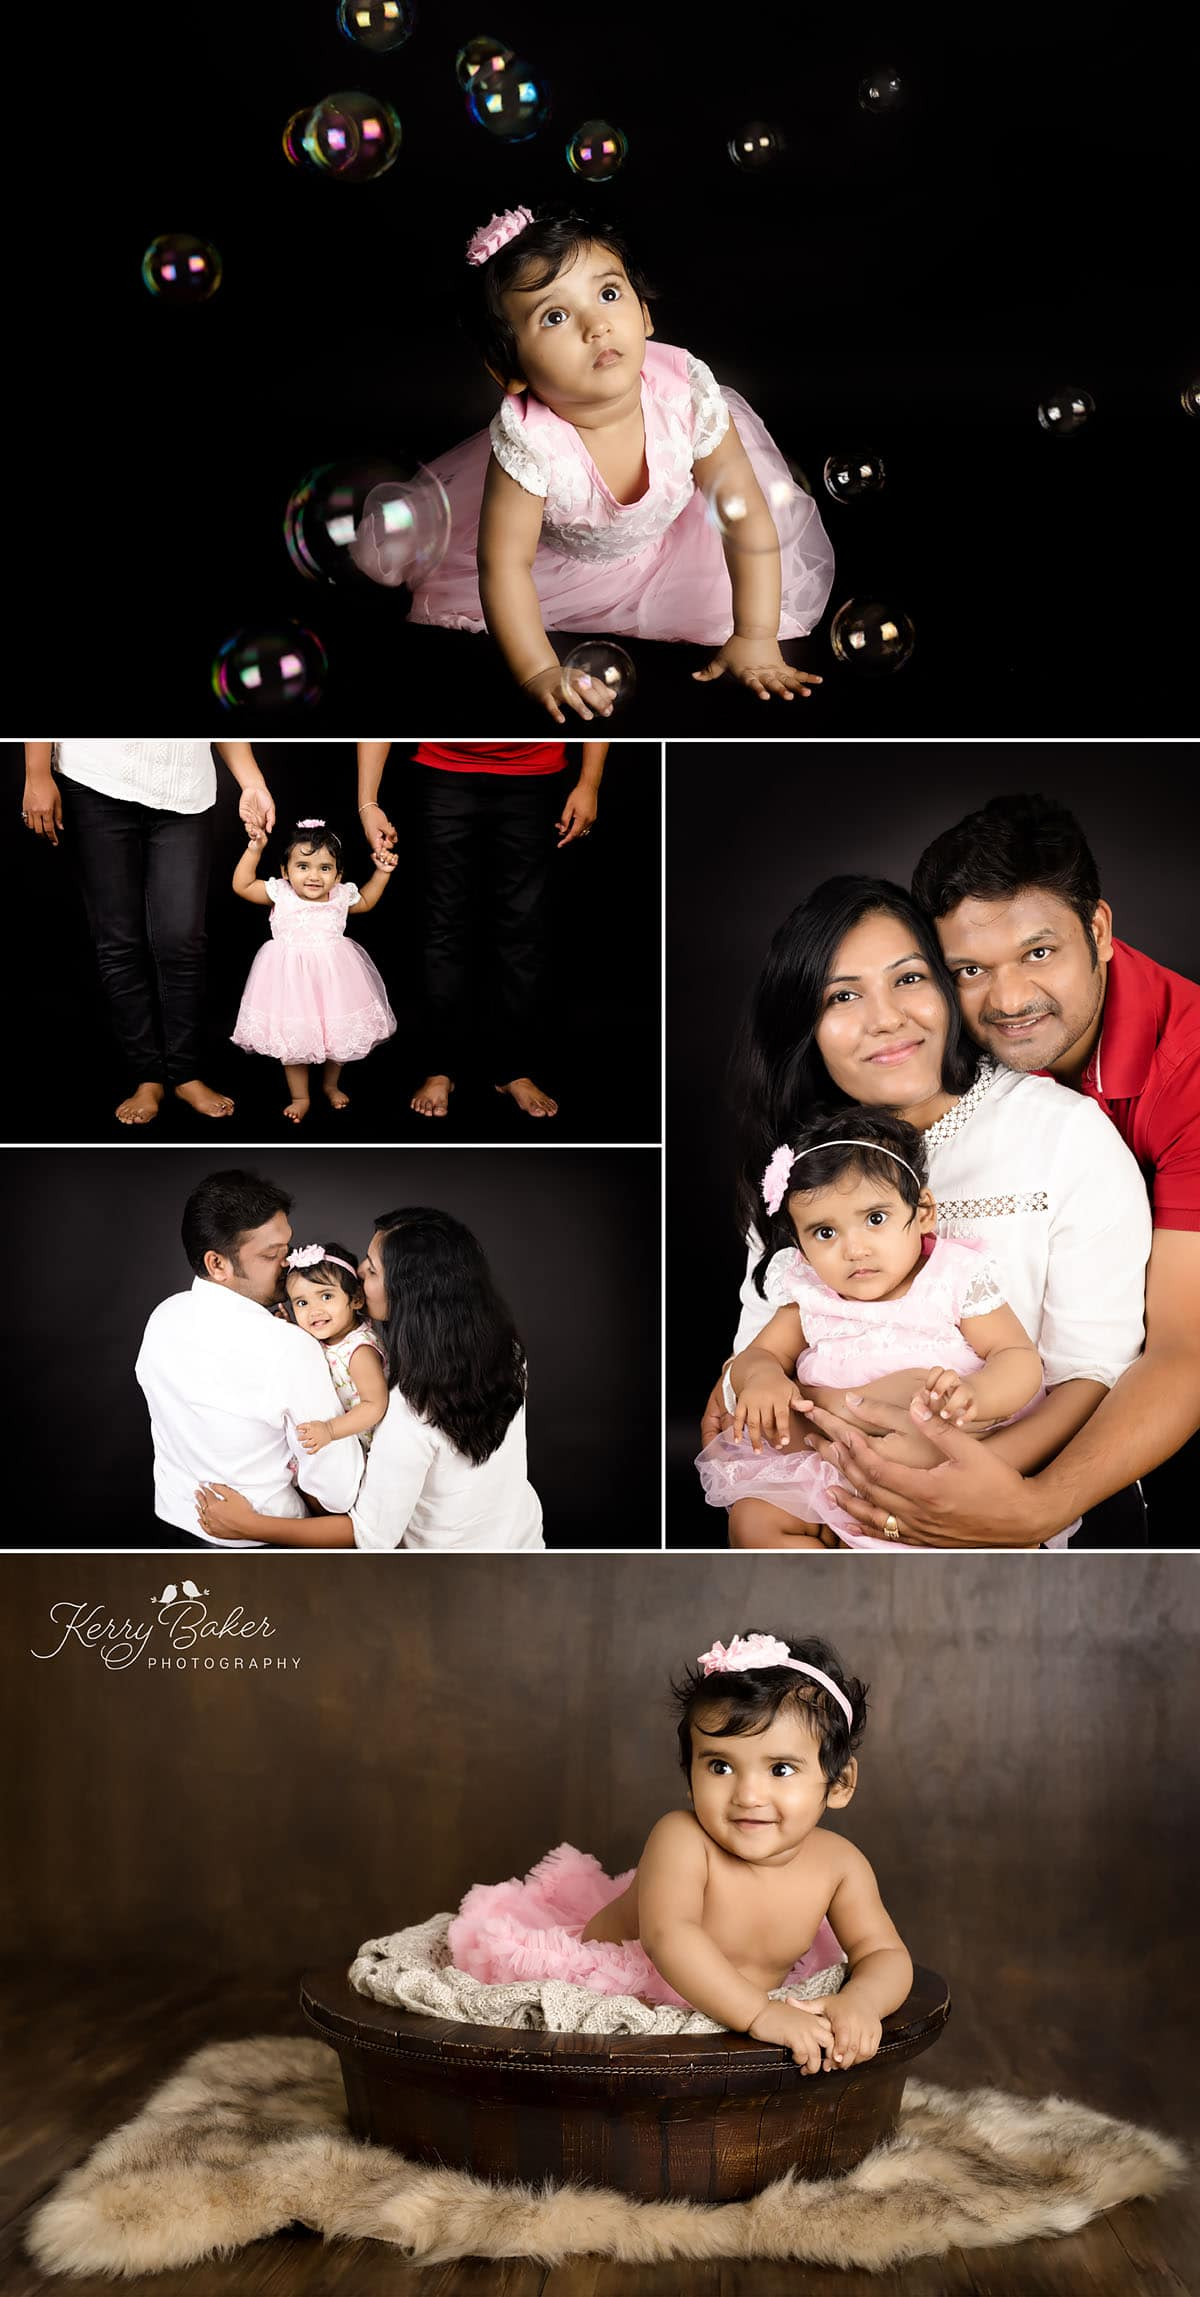 family photos with 9 month baby girl